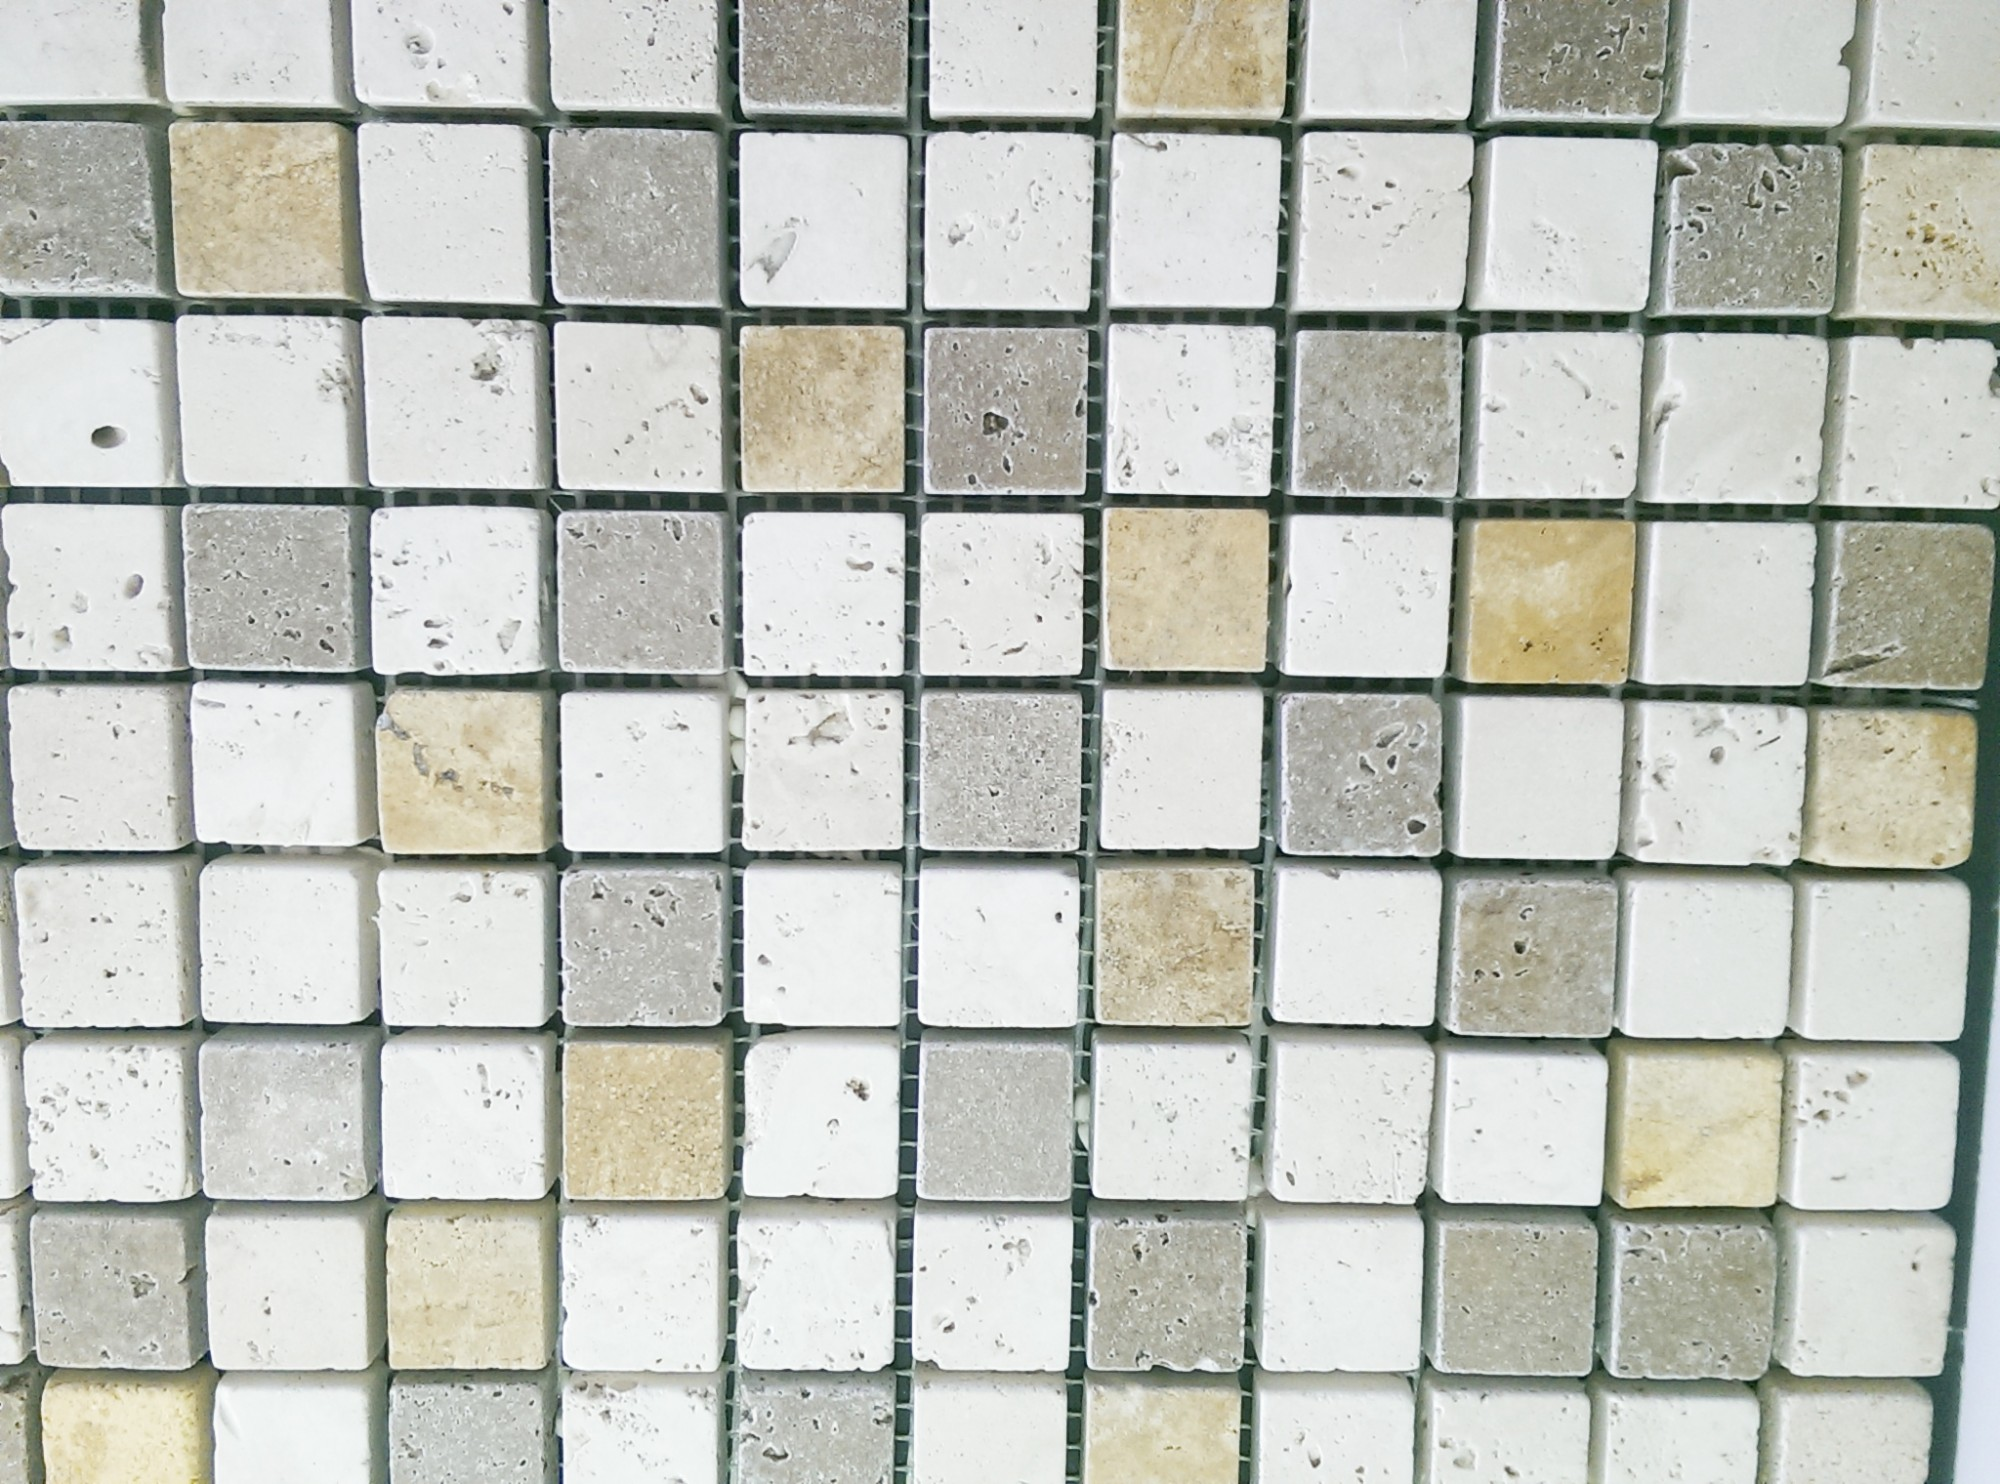 mosaique en pierre 5x5mix travertin beige et brun